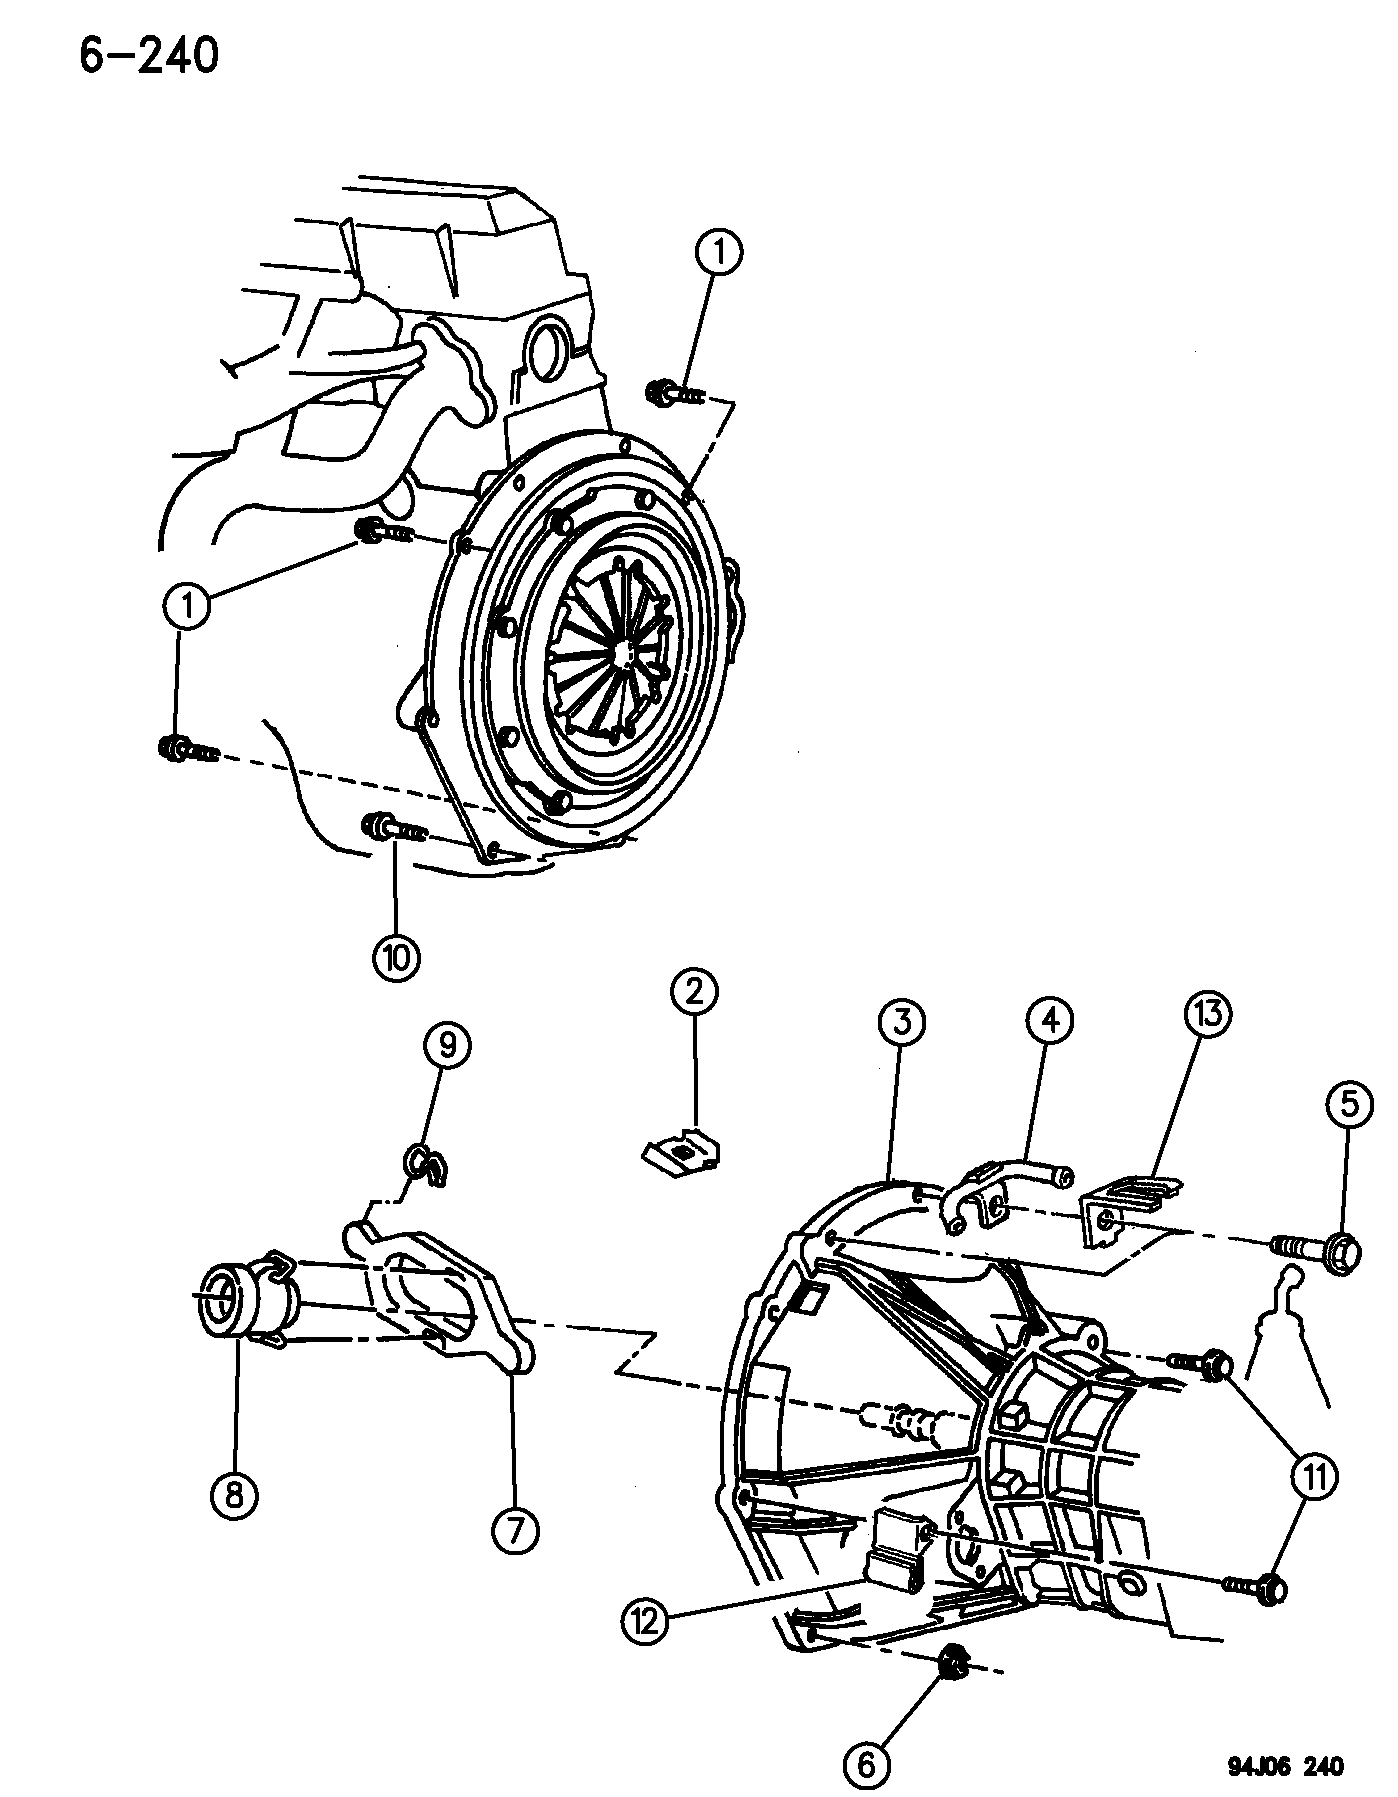 converting an ax5 to external slave cylinder jeep yj wrangler tj 1995 Jeep Wrangler Steering Column Diagram image